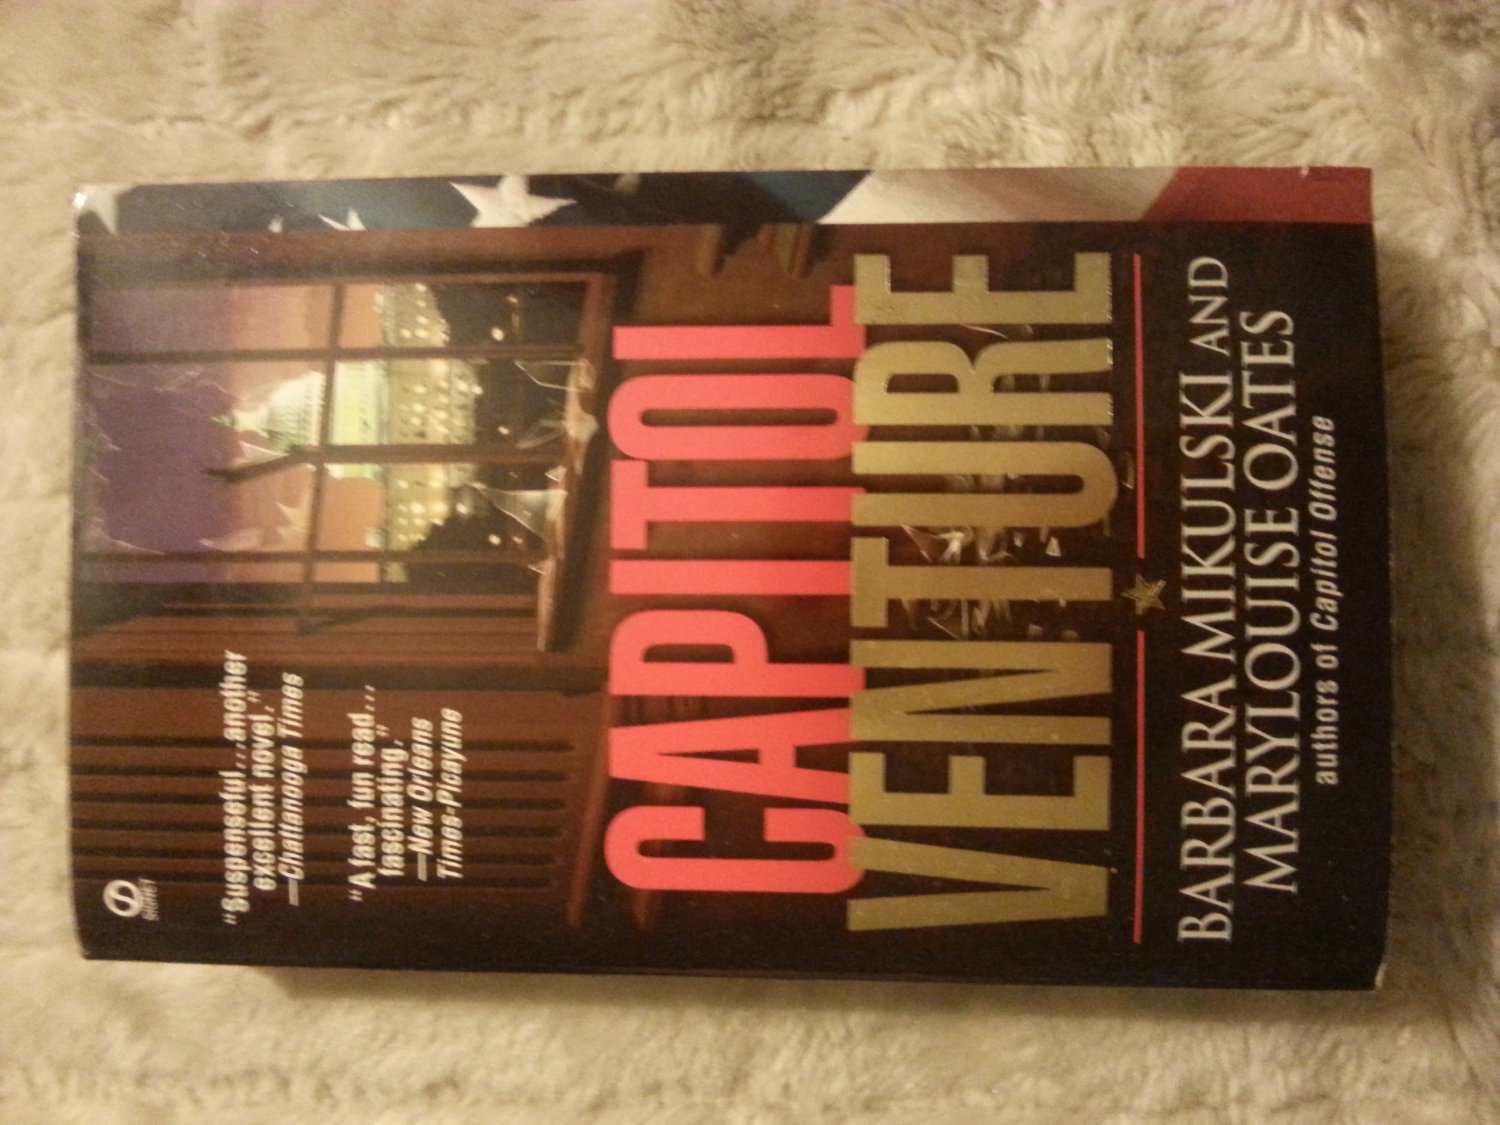 Capitol Venture by Oates, Marylouise, Mikulski, Barbara, 1999 Paperback Book ISBN 0451191838